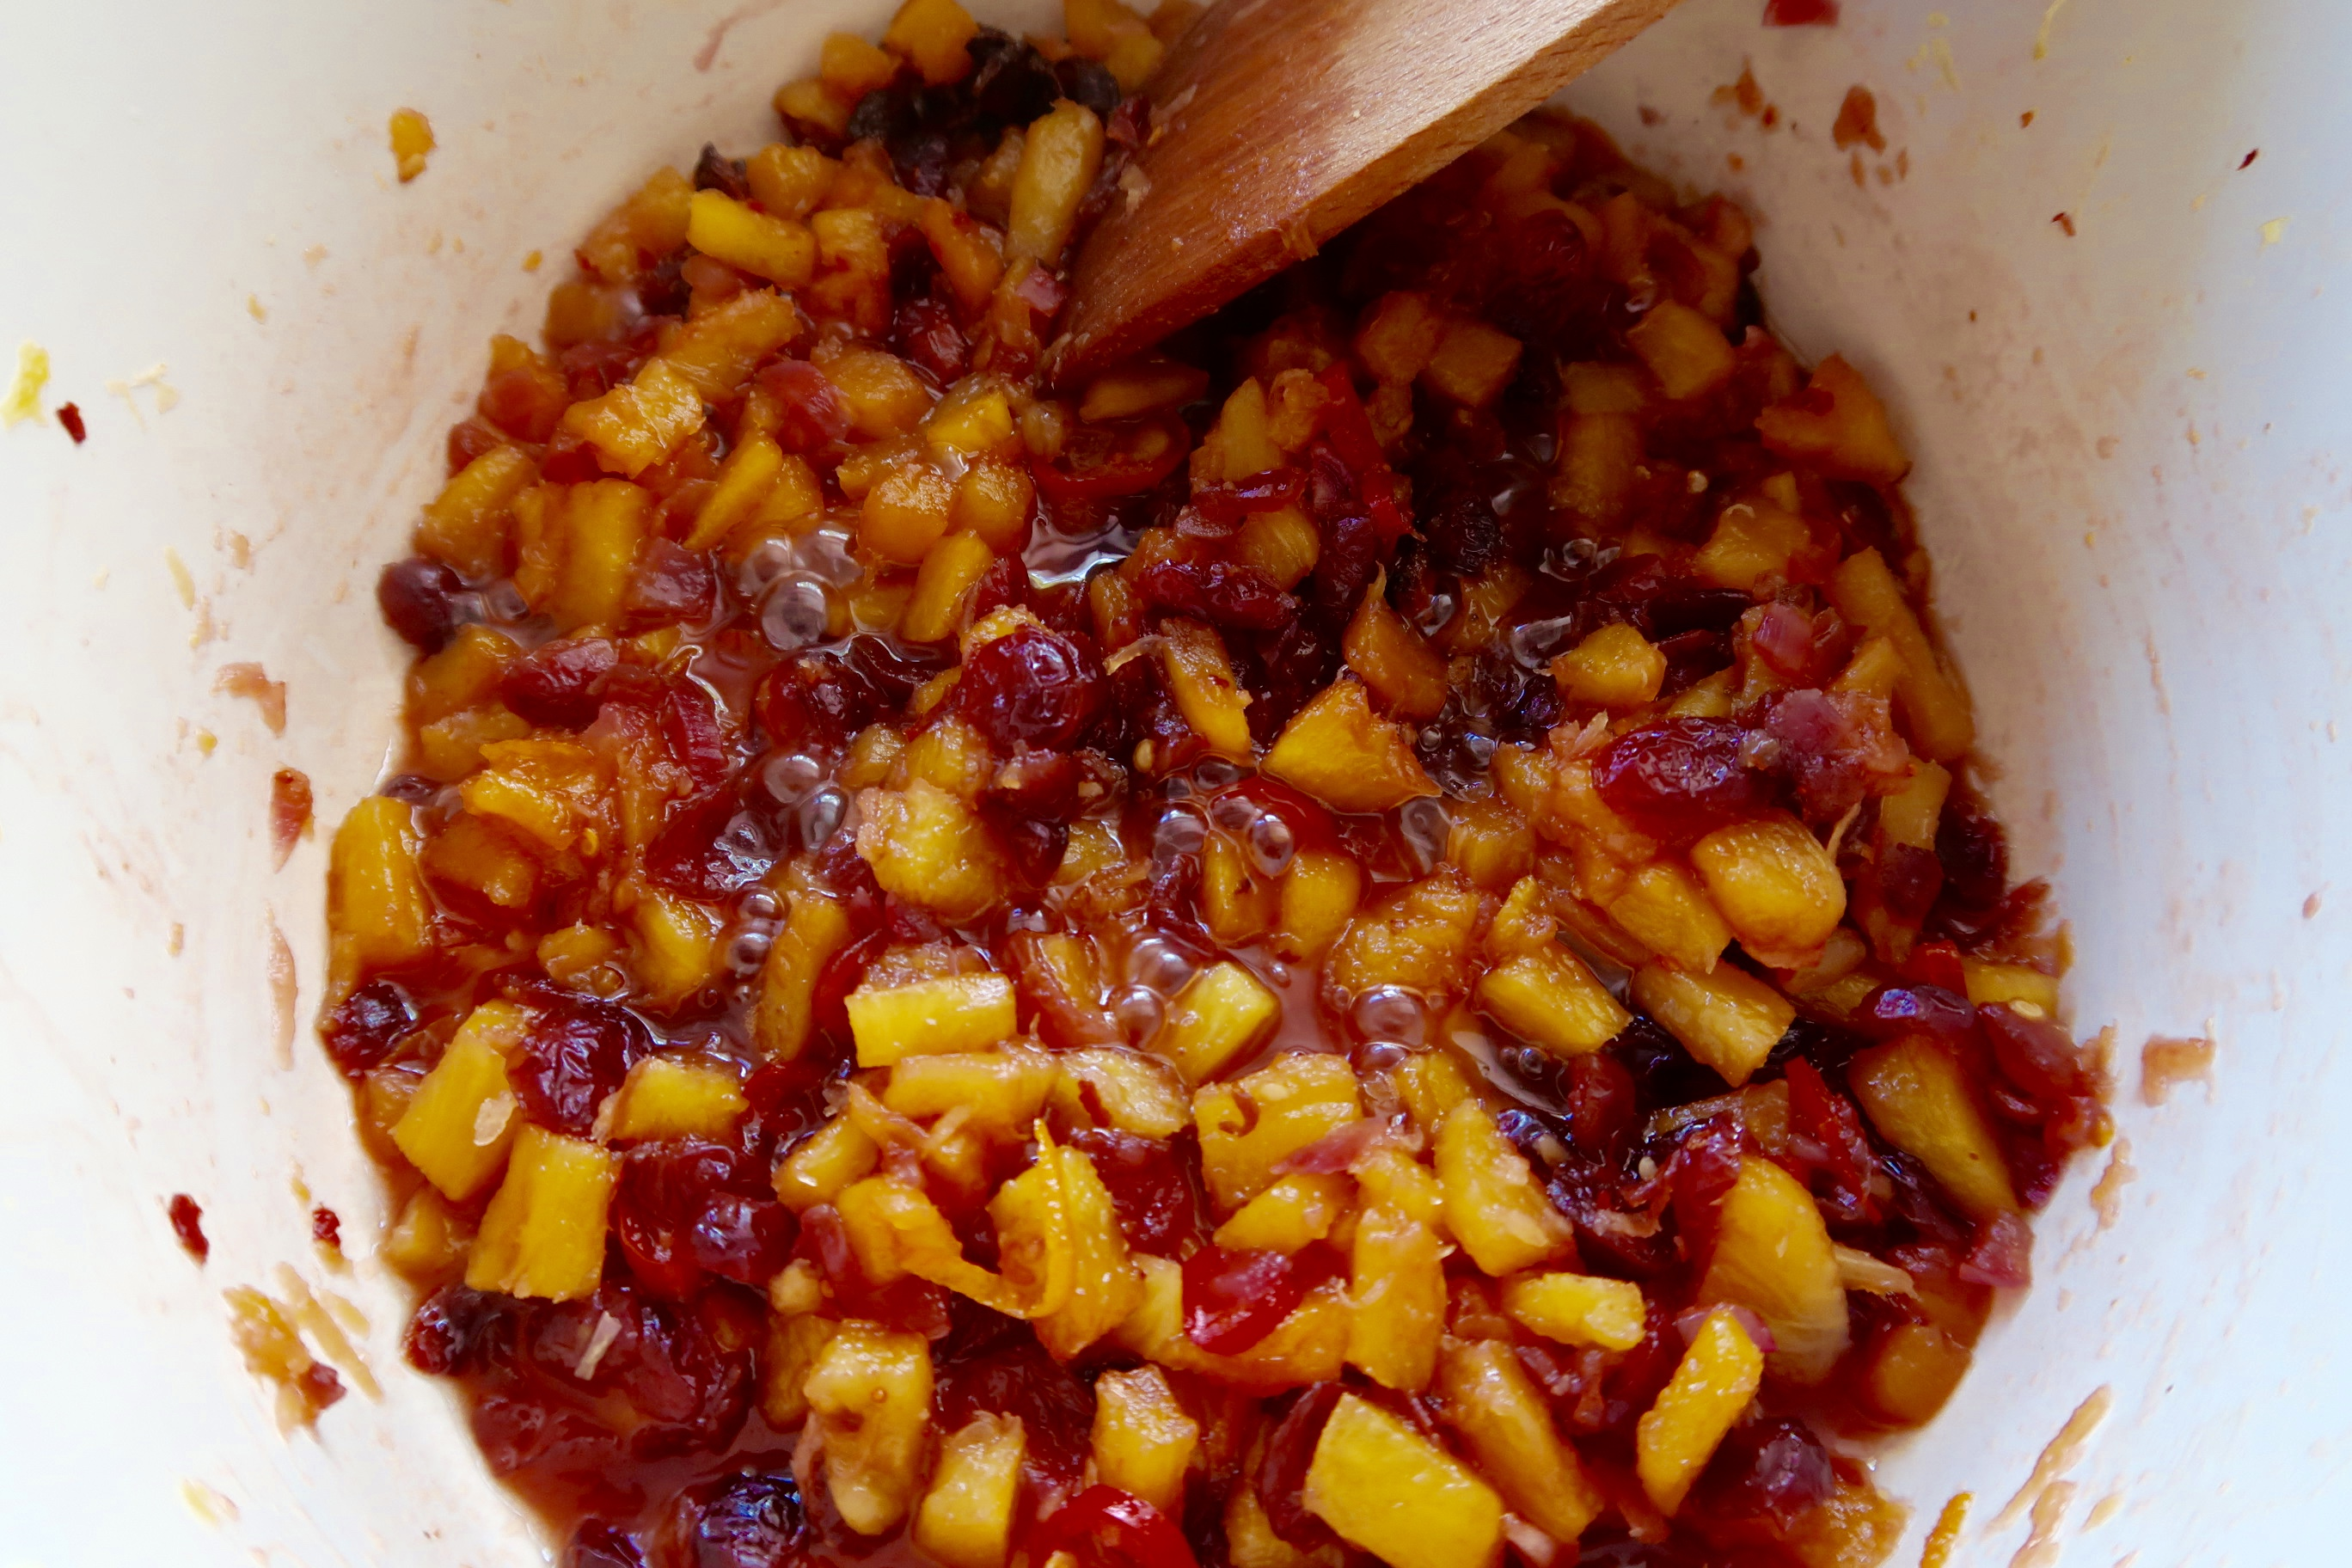 spicy pineapple and cranberry relish simmering on the stove with a wooden spoon for stirring